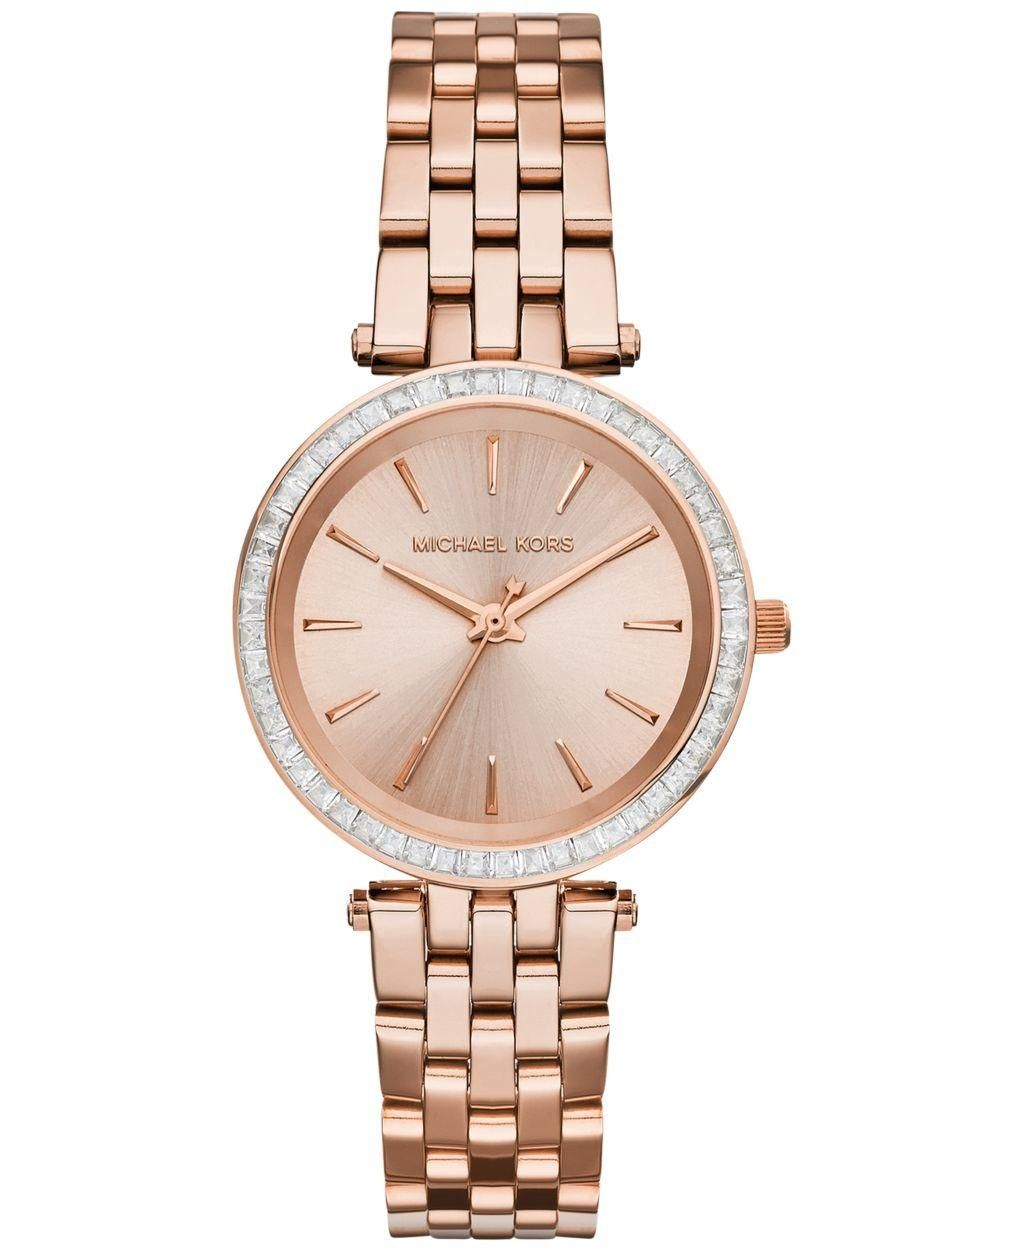 cc75b9d6367 Michael Kors Women's Mini Darci Rose Gold-Tone Stainless Steel Bracelet  Watch 33mm MK3366 - Brought to you by Avarsha.com